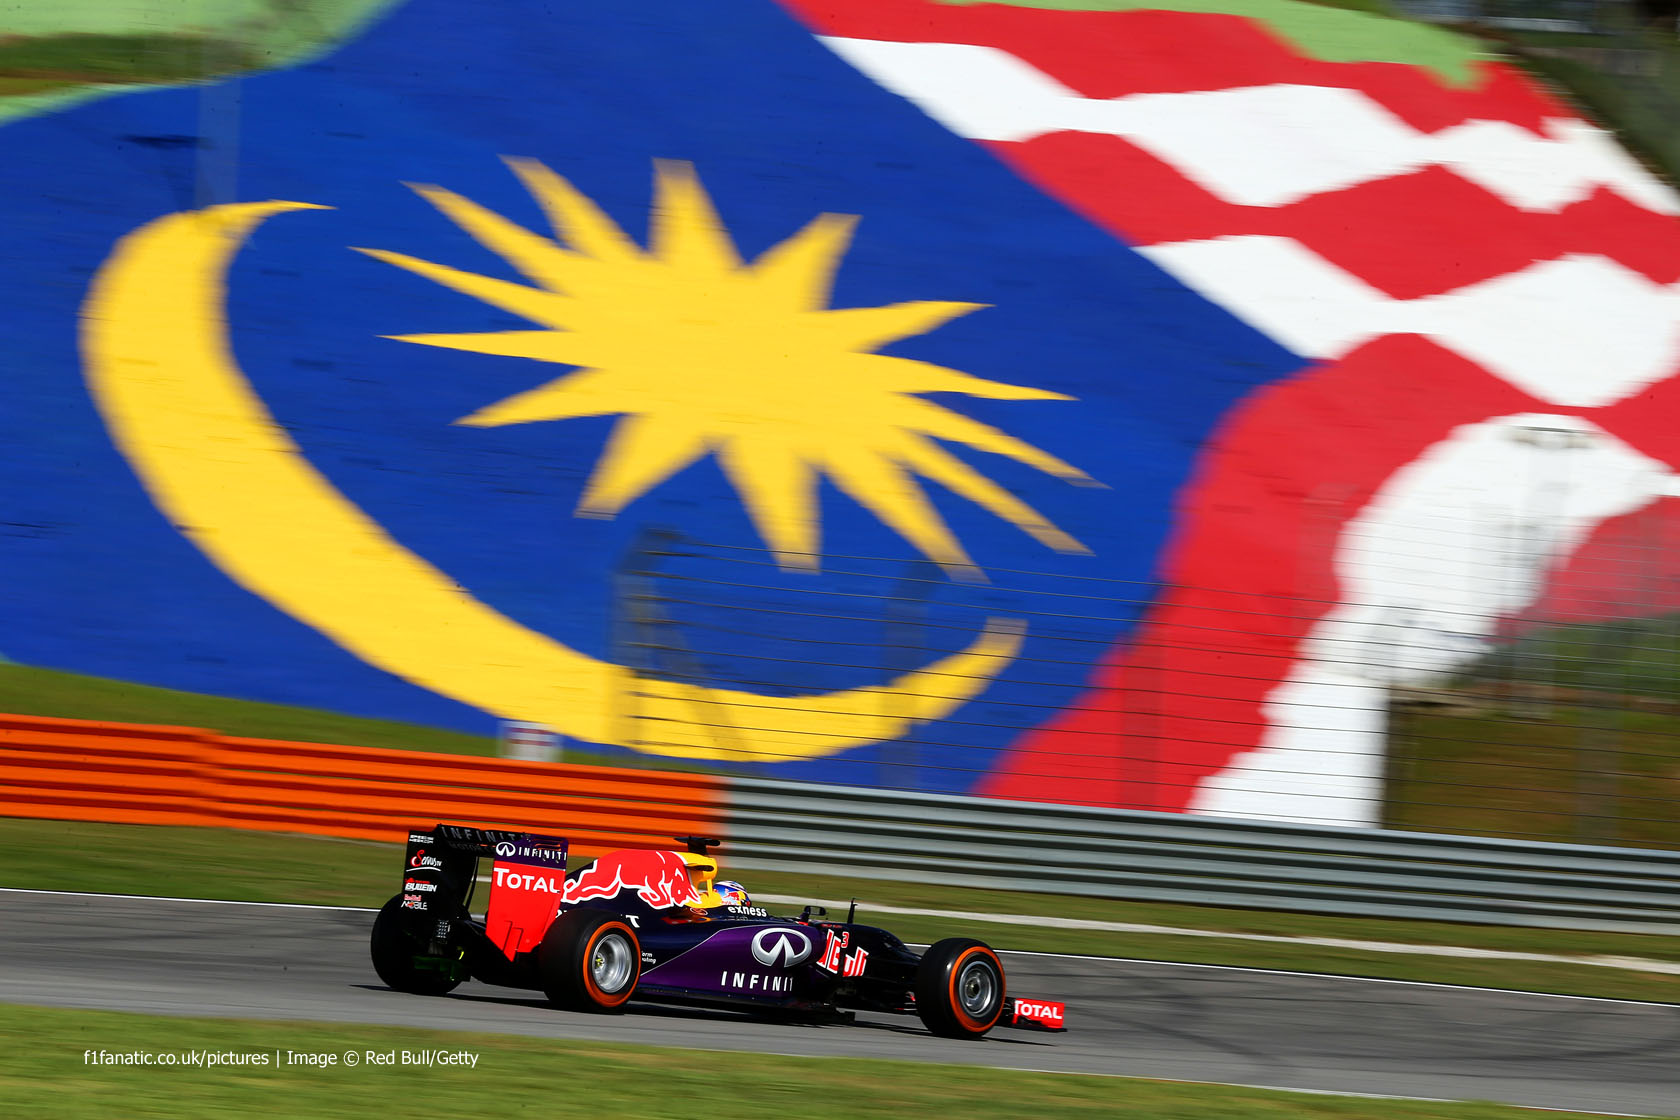 Daniel Ricciardo, Red Bull, Sepang International Circuit, 2015